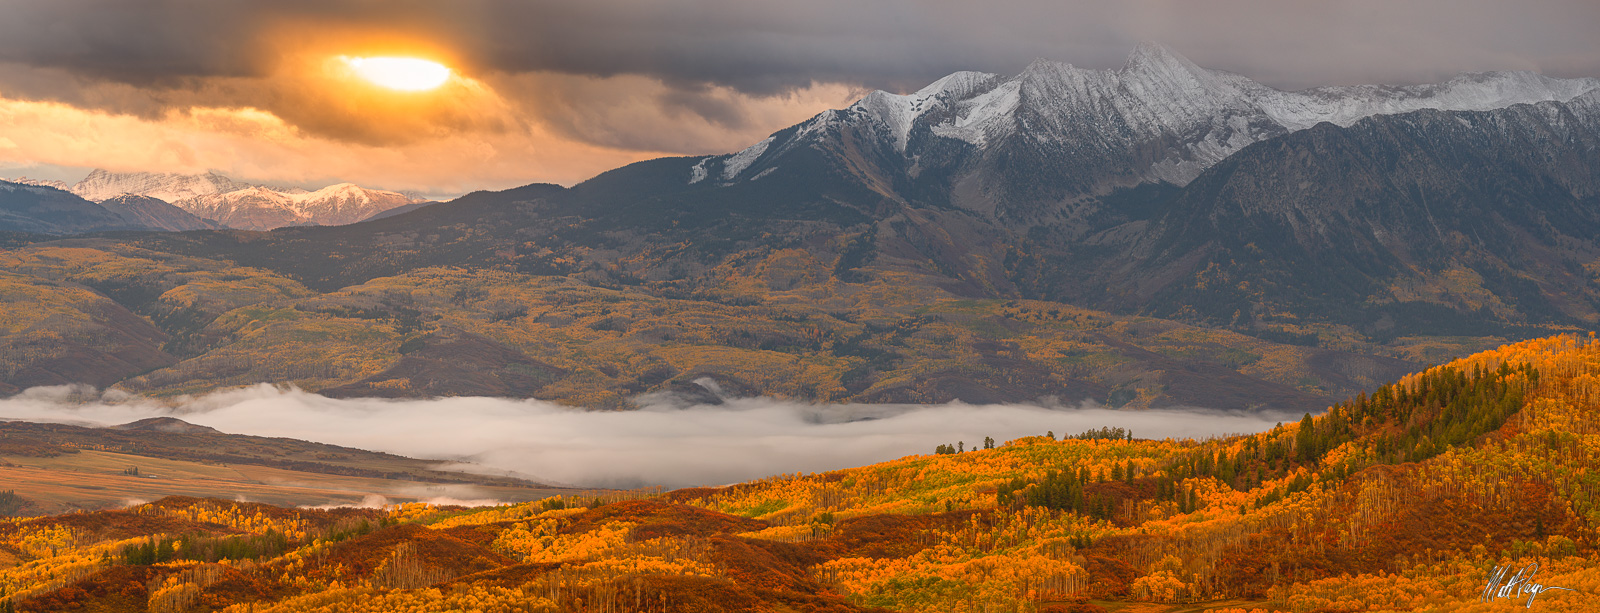 The first light of day at sunrise in autumn as seen in the West Elk Mountains of Colorado near the town of Paonia. This panorama...